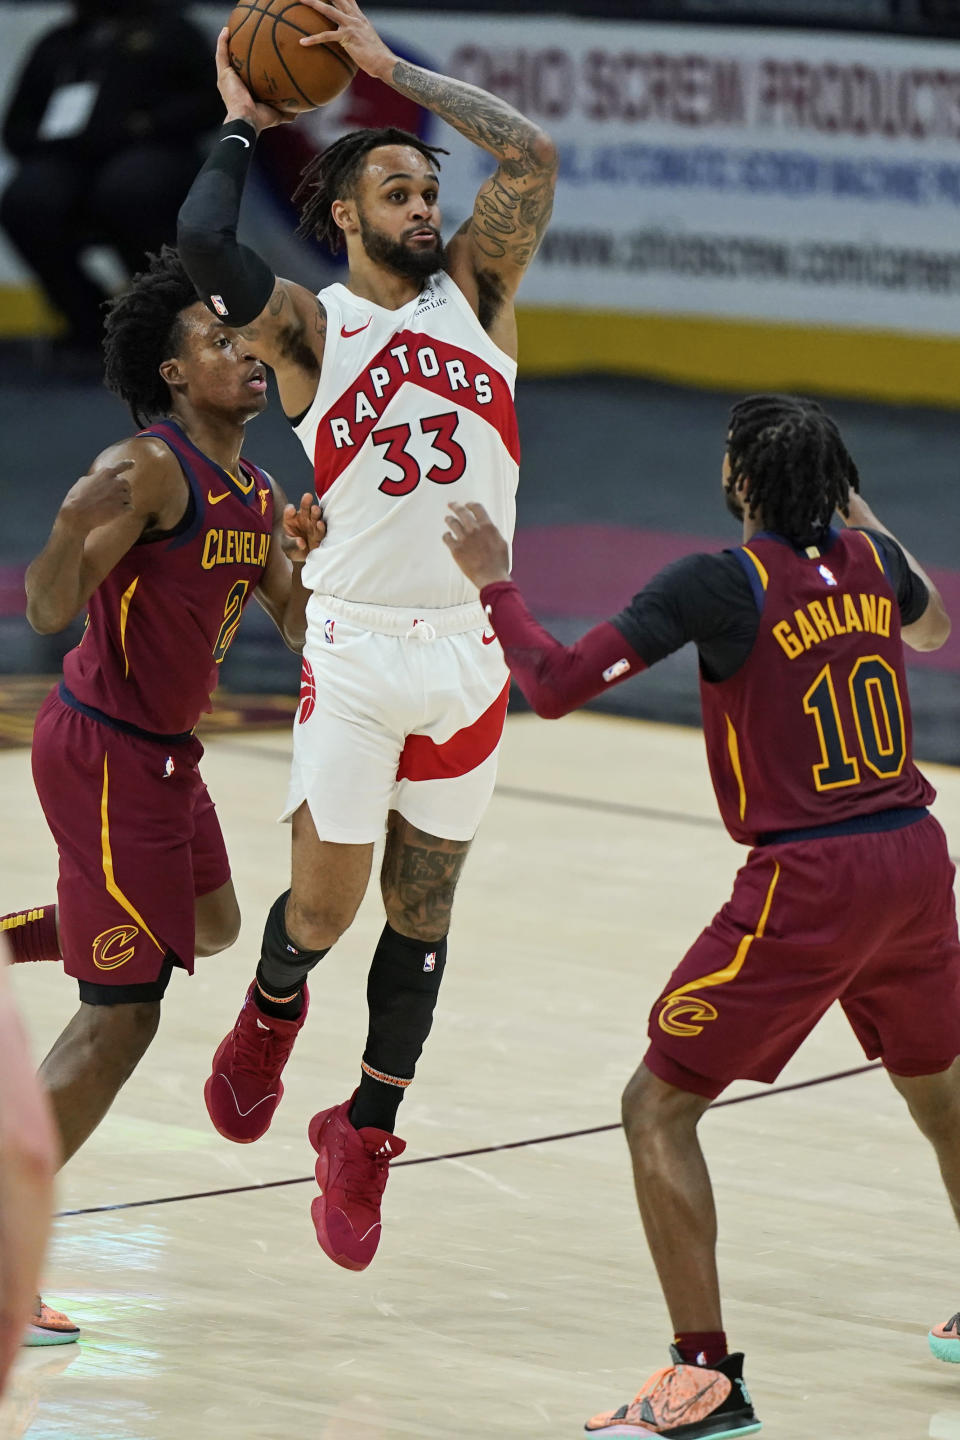 Toronto Raptors' Gary Trent Jr. (33) looks to pass against Cleveland Cavaliers' Collin Sexton (2) and Darius Garland (10) in the second half of an NBA basketball game, Saturday, April 10, 2021, in Cleveland. (AP Photo/Tony Dejak)